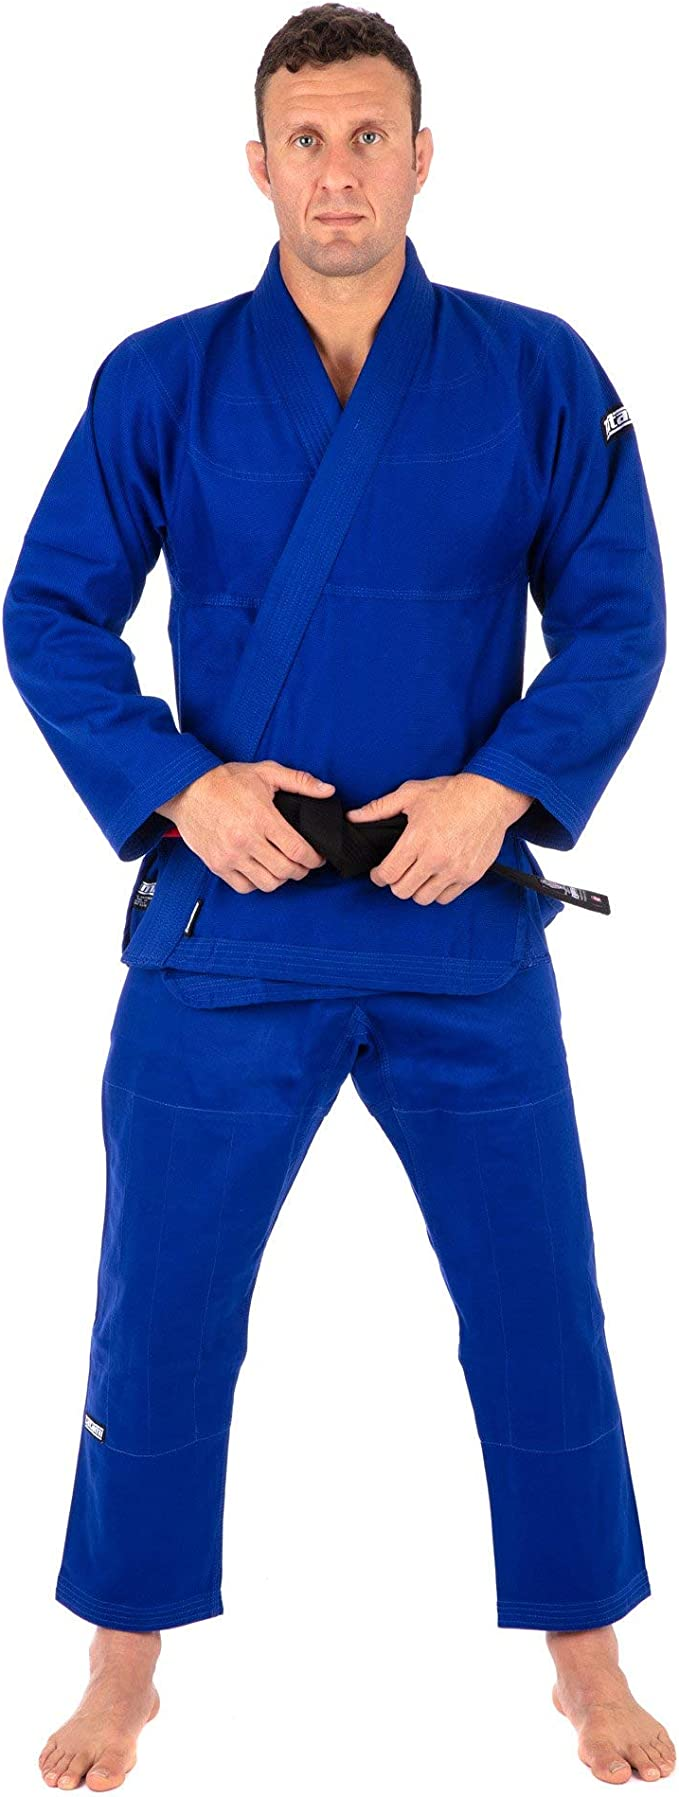 Black Tatami Fightwear Unisexs dlx-blk-comp-belt-A3 Deluxe BJJ Competitor One Size